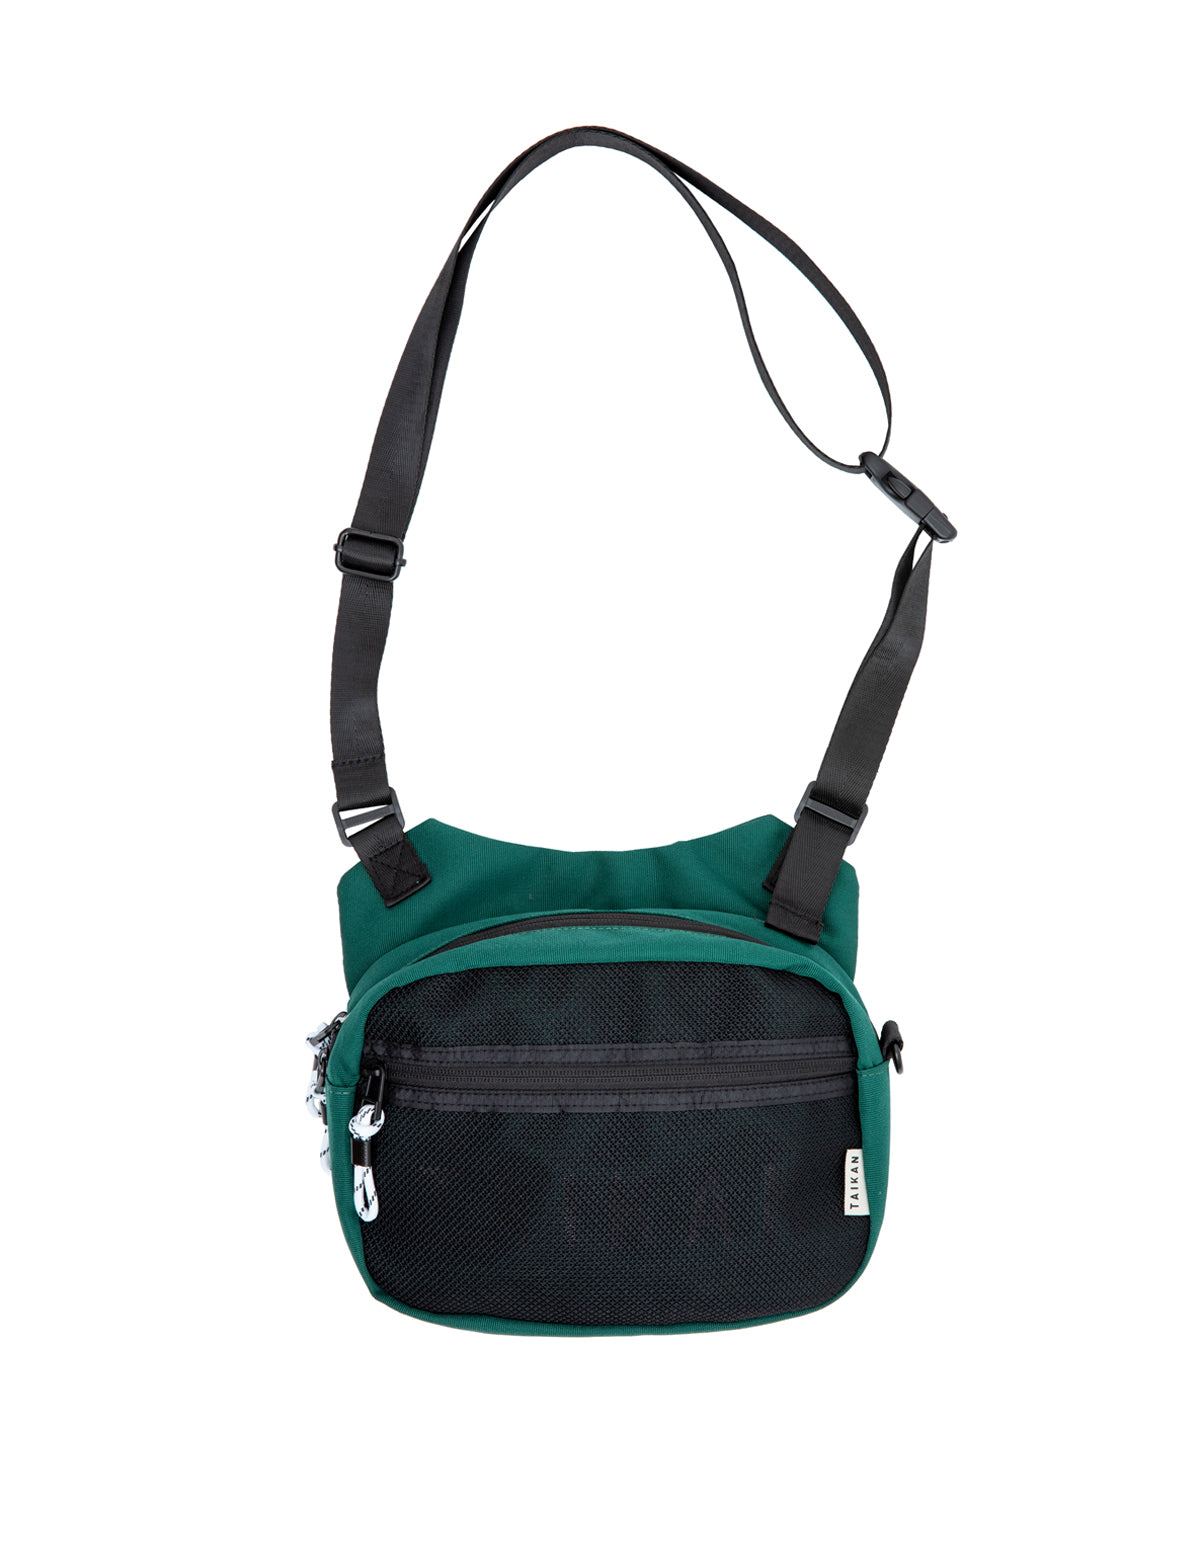 Taikan Shoki Bag Green